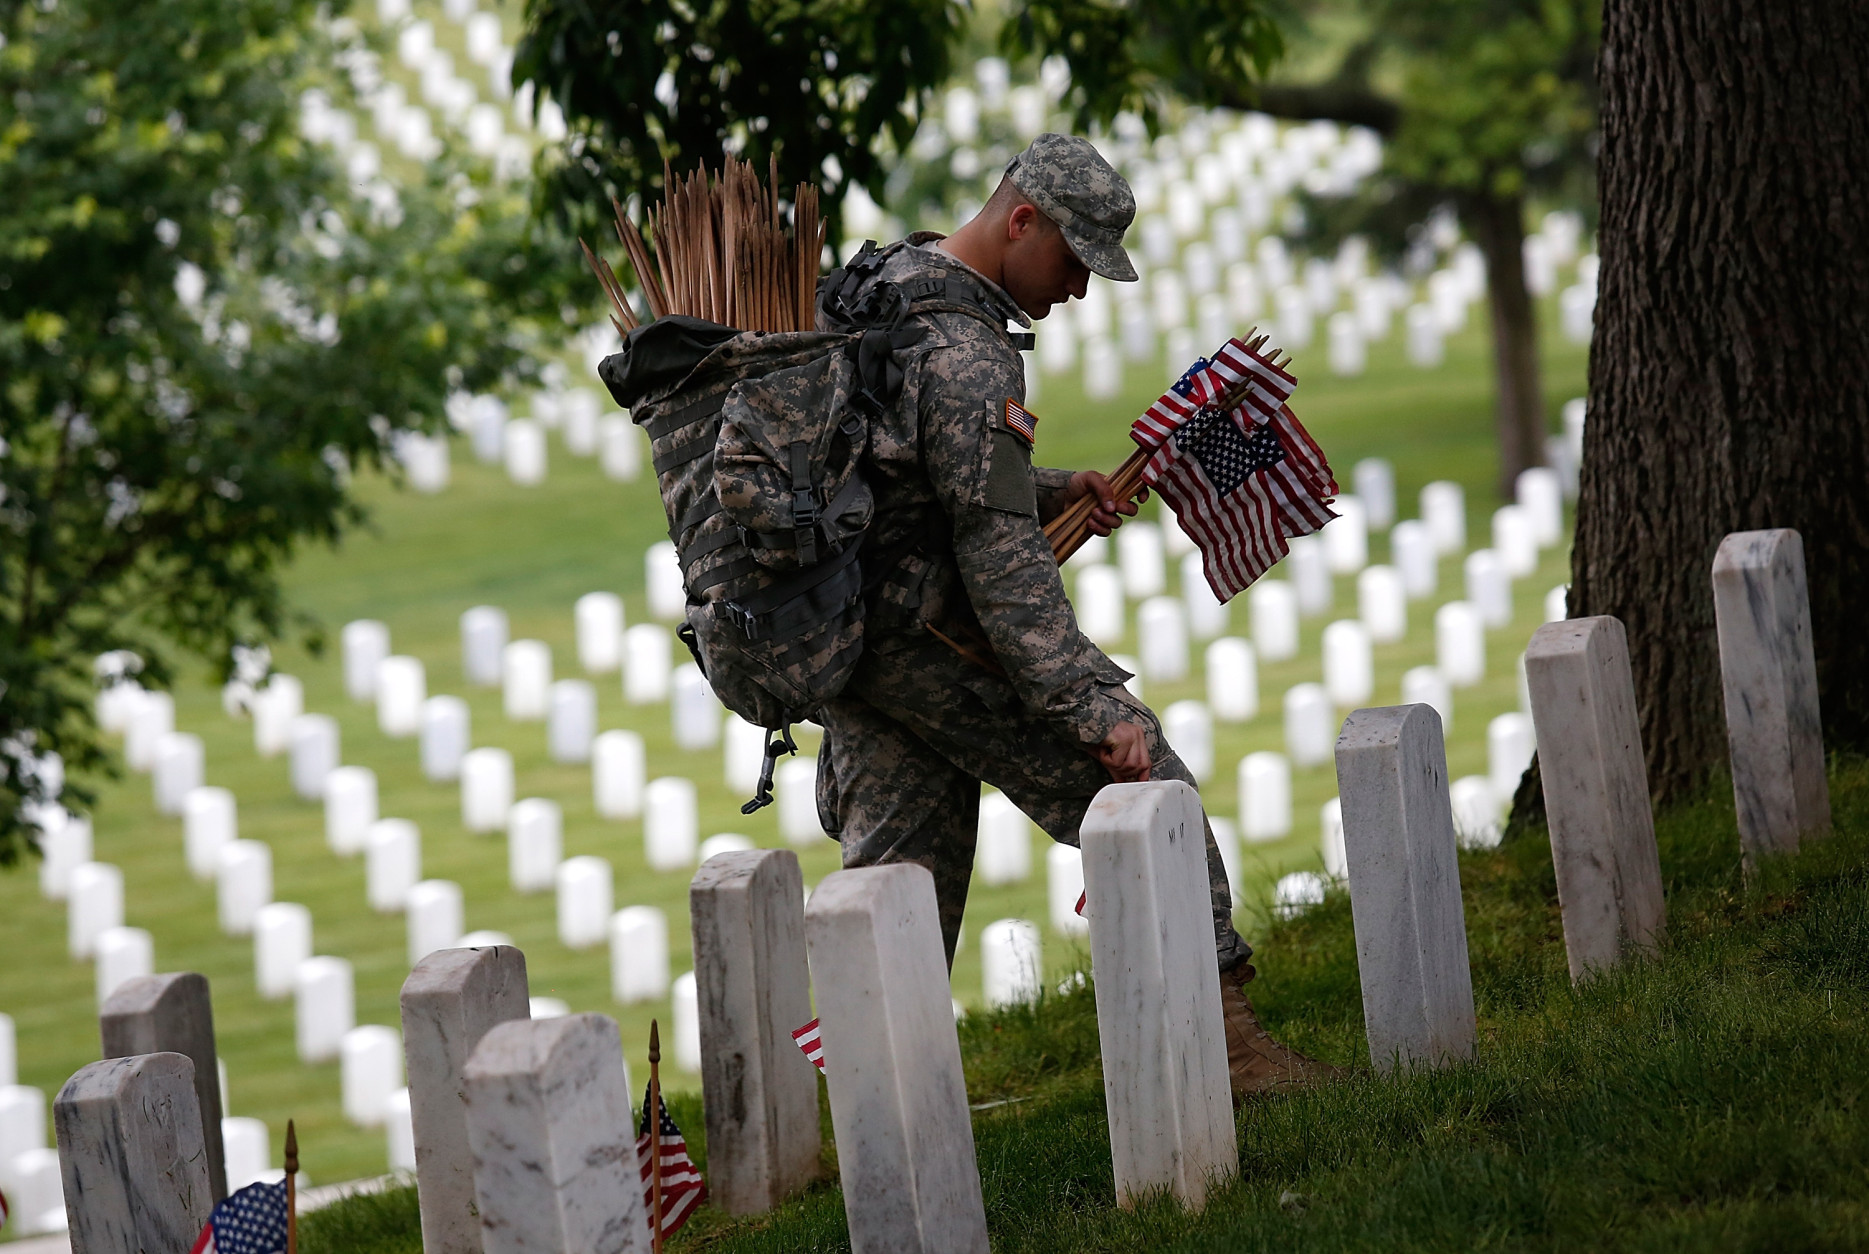 ARLINGTON, VA - MAY 21:  Specialist Michael Escobar of the 3rd U.S. Infantry Regiment places American flags at the graves of U.S. soldiers buried at Arlington National Cemetery, in preparation for Memorial Day May 21, 2015 in Arlington, Virginia. 'Flags-In' has become an annual ceremony since the 3rd U.S. Infantry Regiment (The Old Guard) was designated to be an Army's official ceremonial unit in 1948 (Photo by Win McNamee/Getty Images)